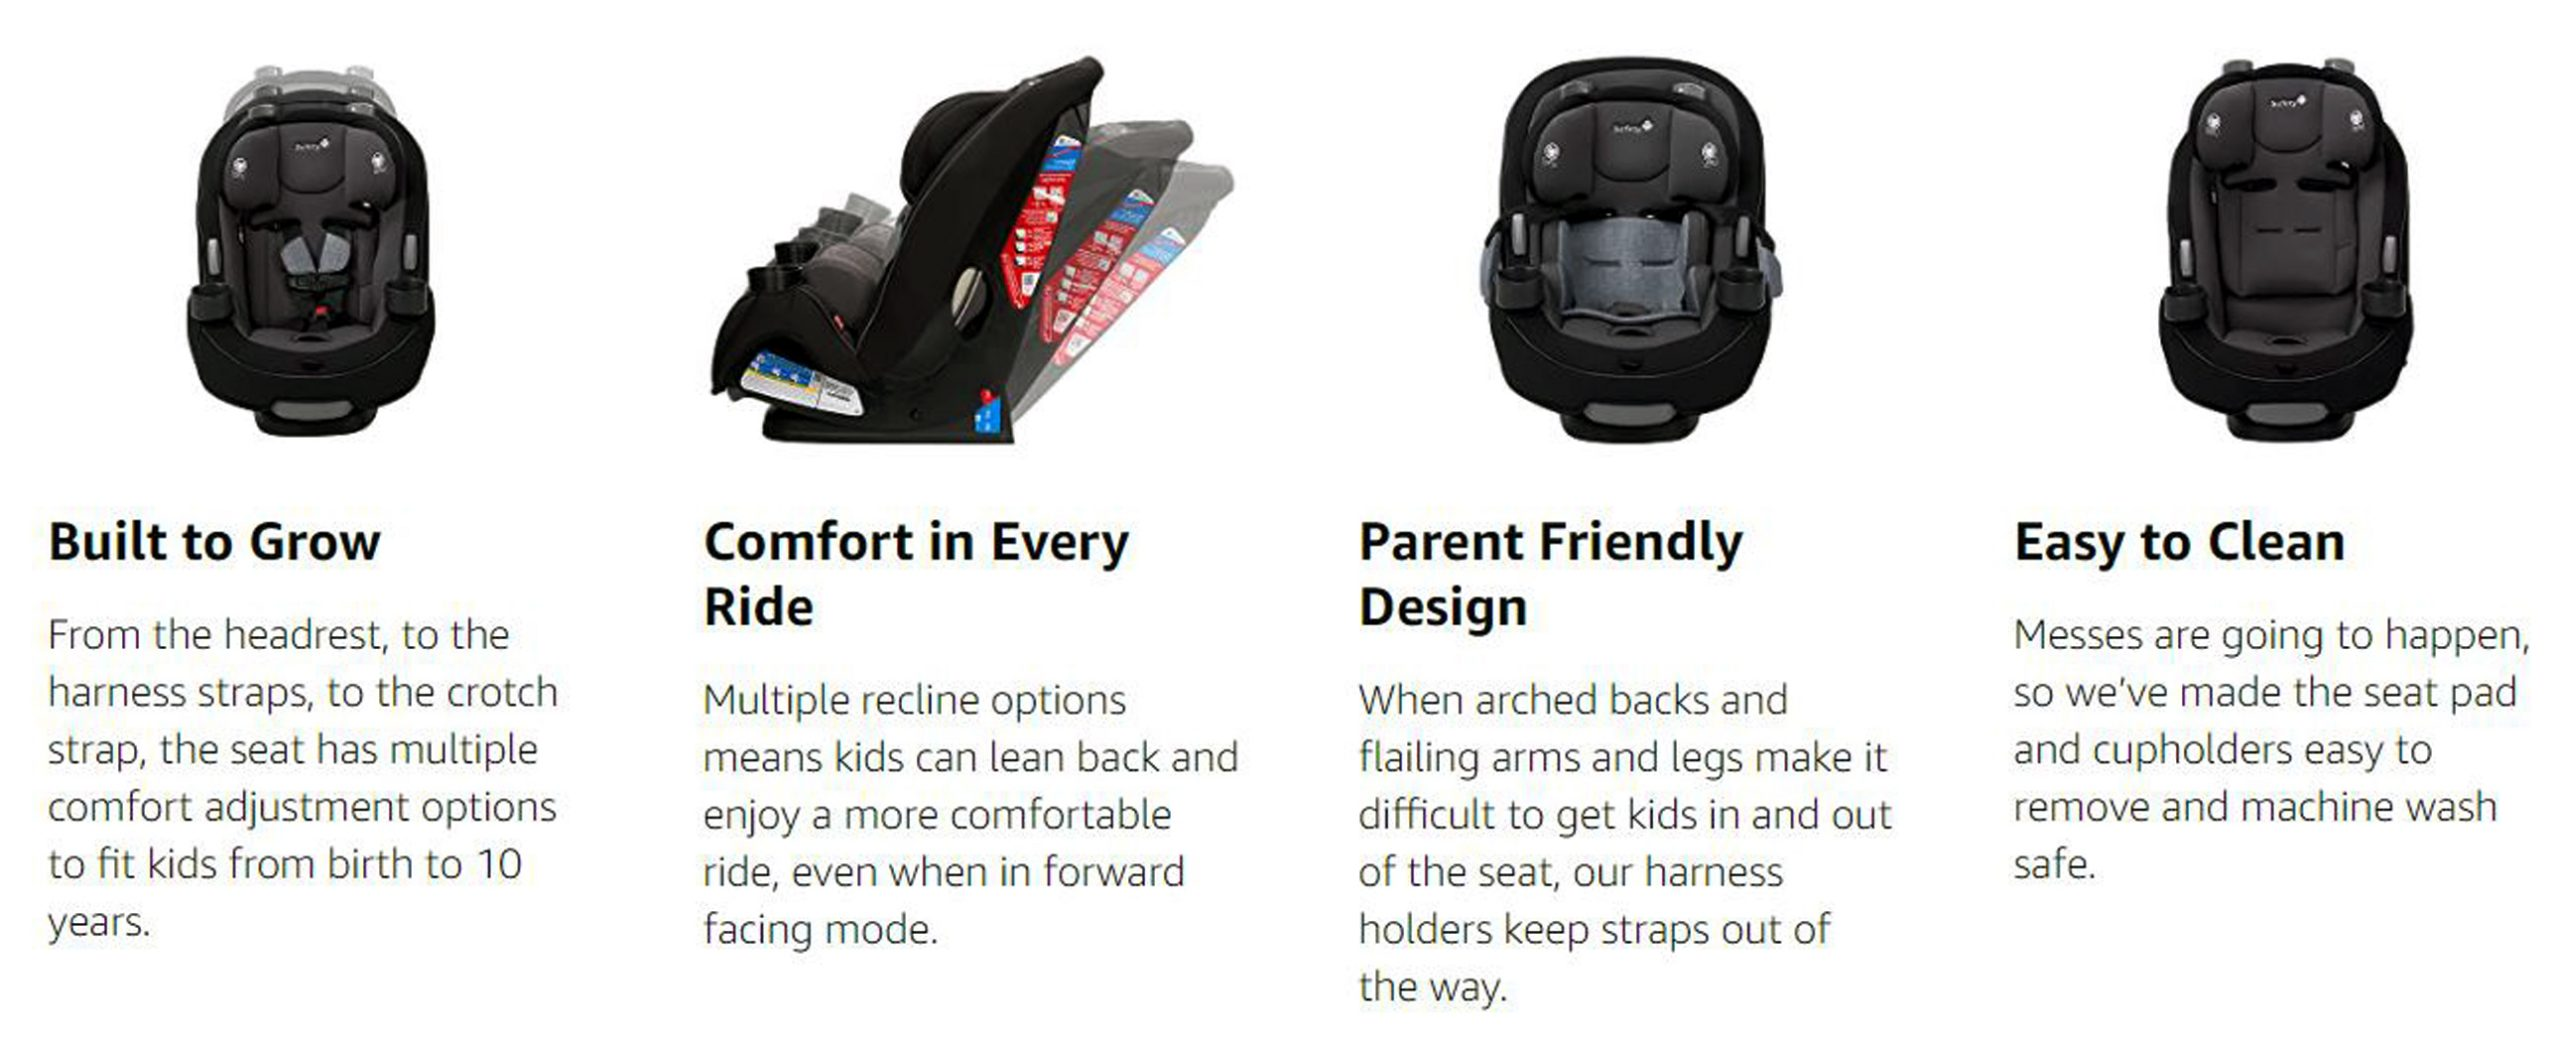 Let's Know the Types of Car Seat for Your Baby